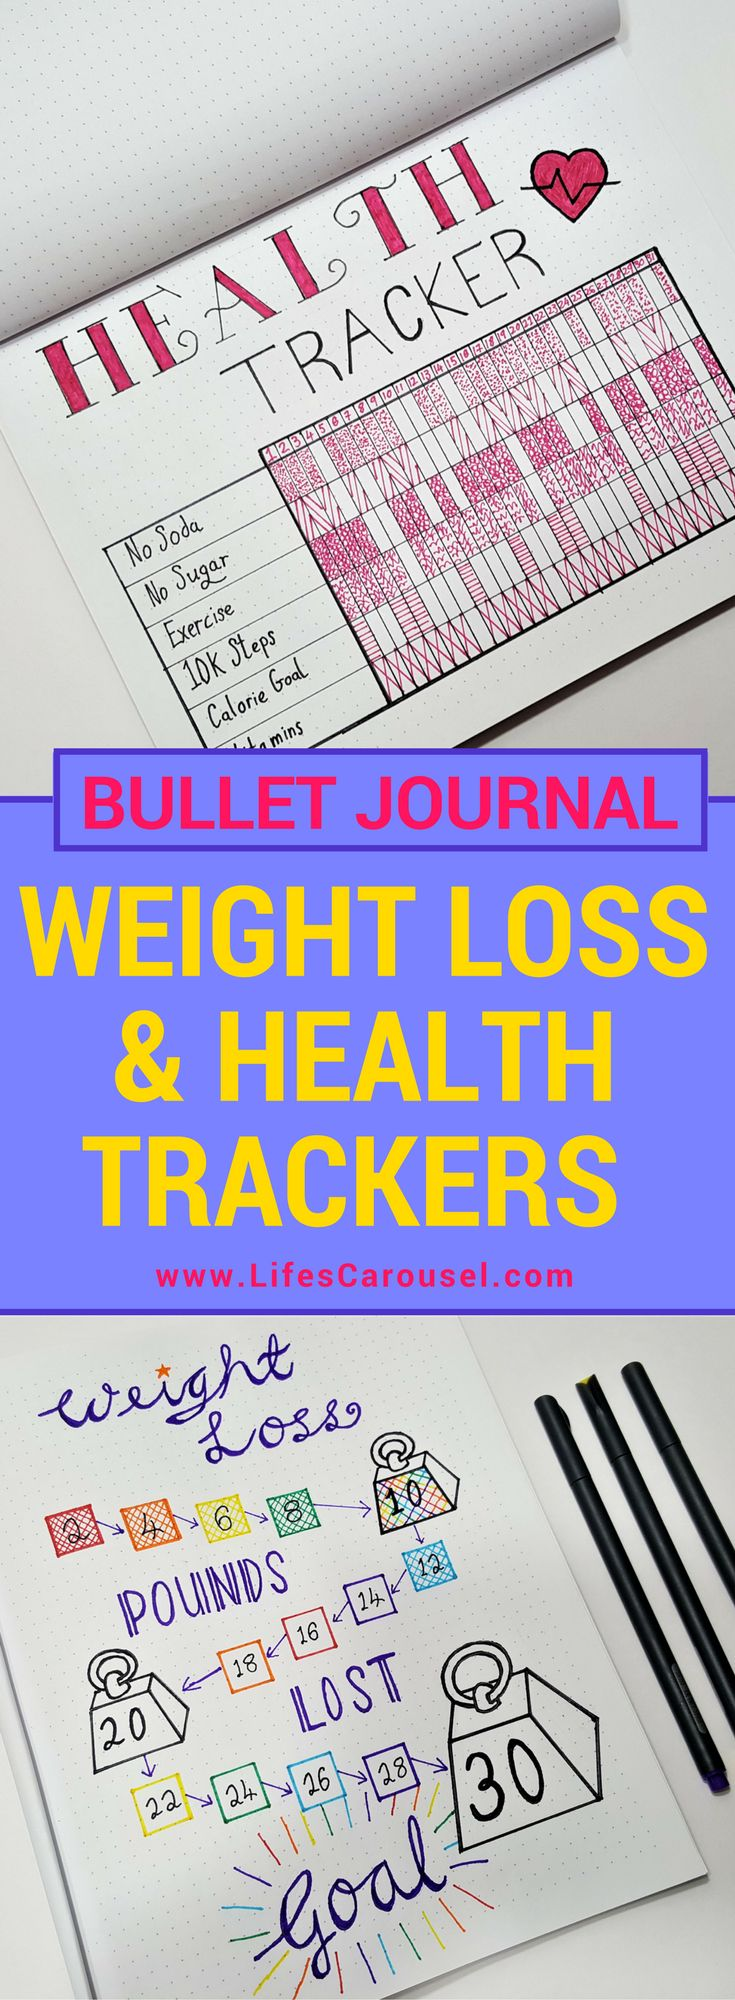 Weight Loss Tracker for Bullet Journal – Develop Healthy Habits!